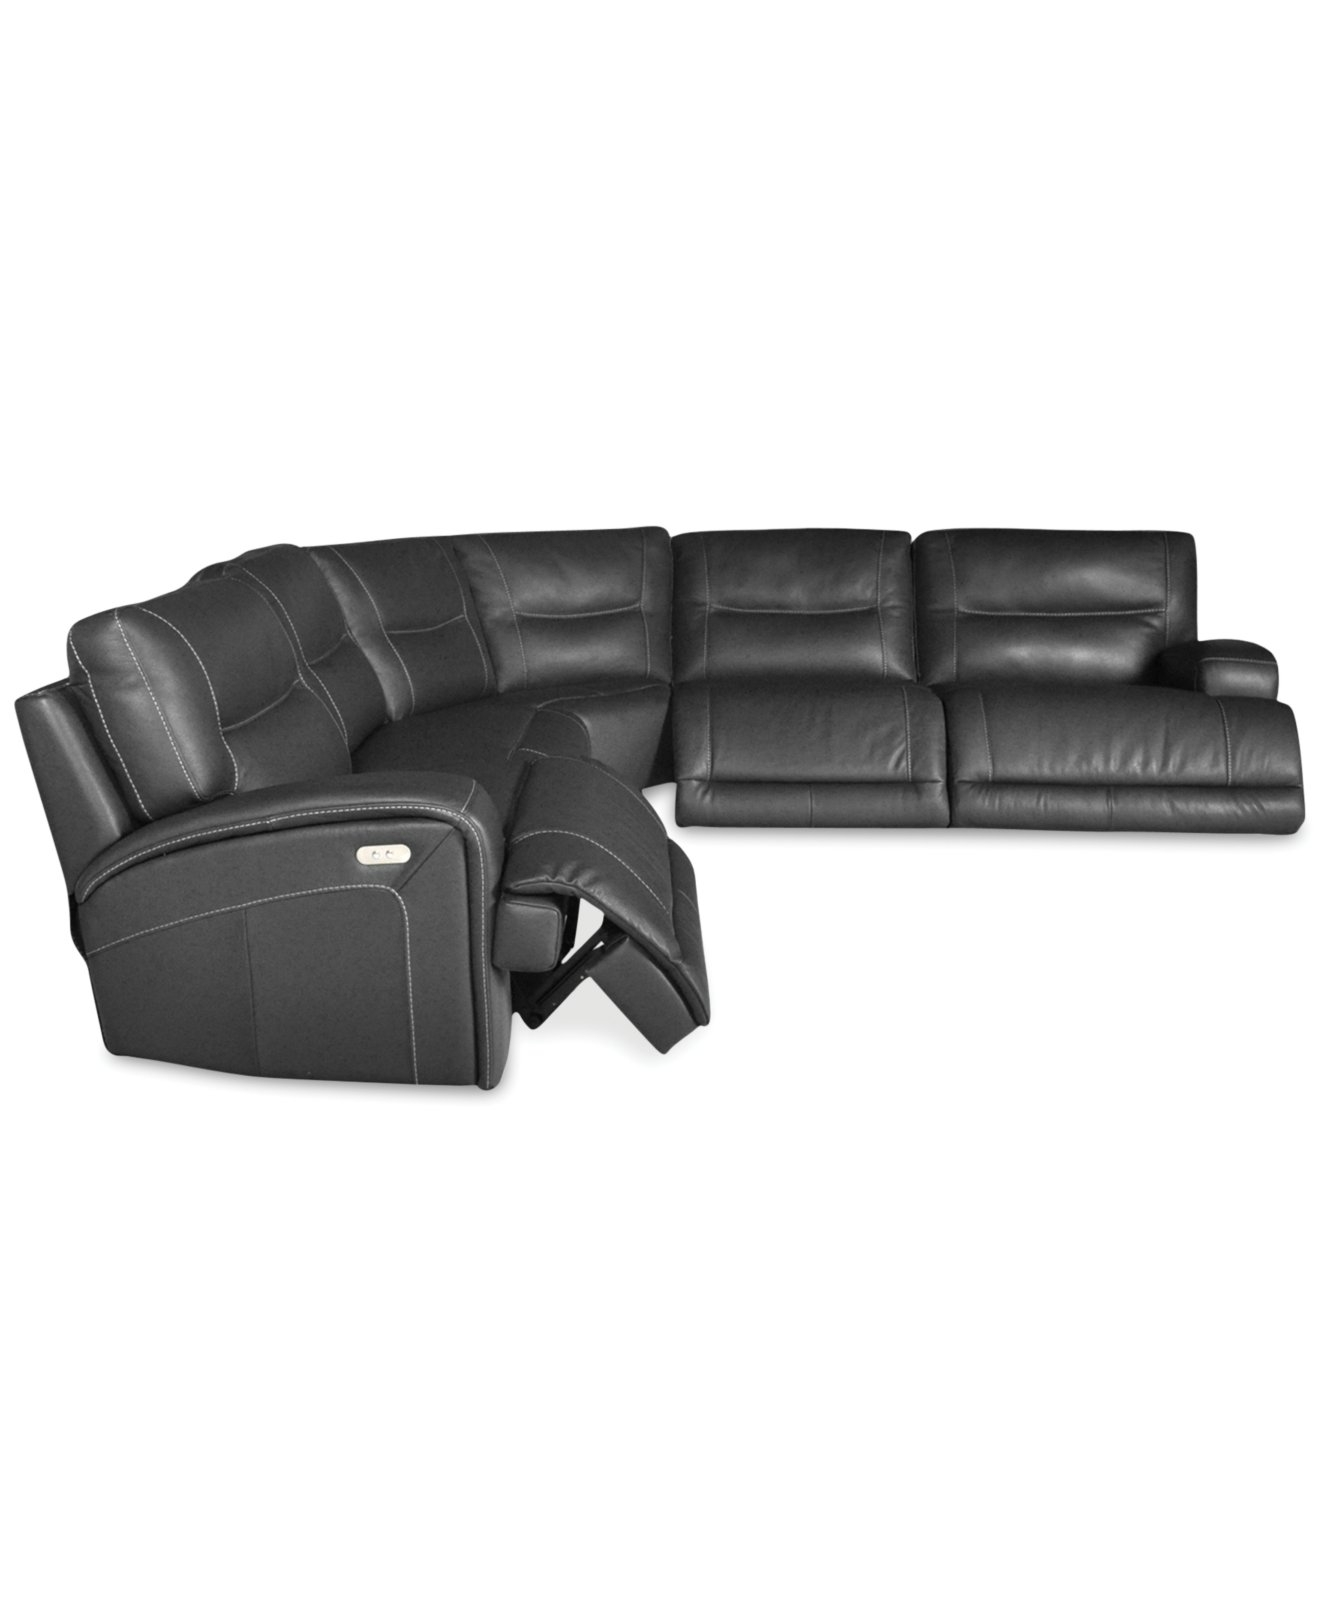 Caruso Leather 6 Piece Power Motion Chaise Sectional Sofa Den Regarding 6 Piece Leather Sectional Sofa (View 15 of 15)